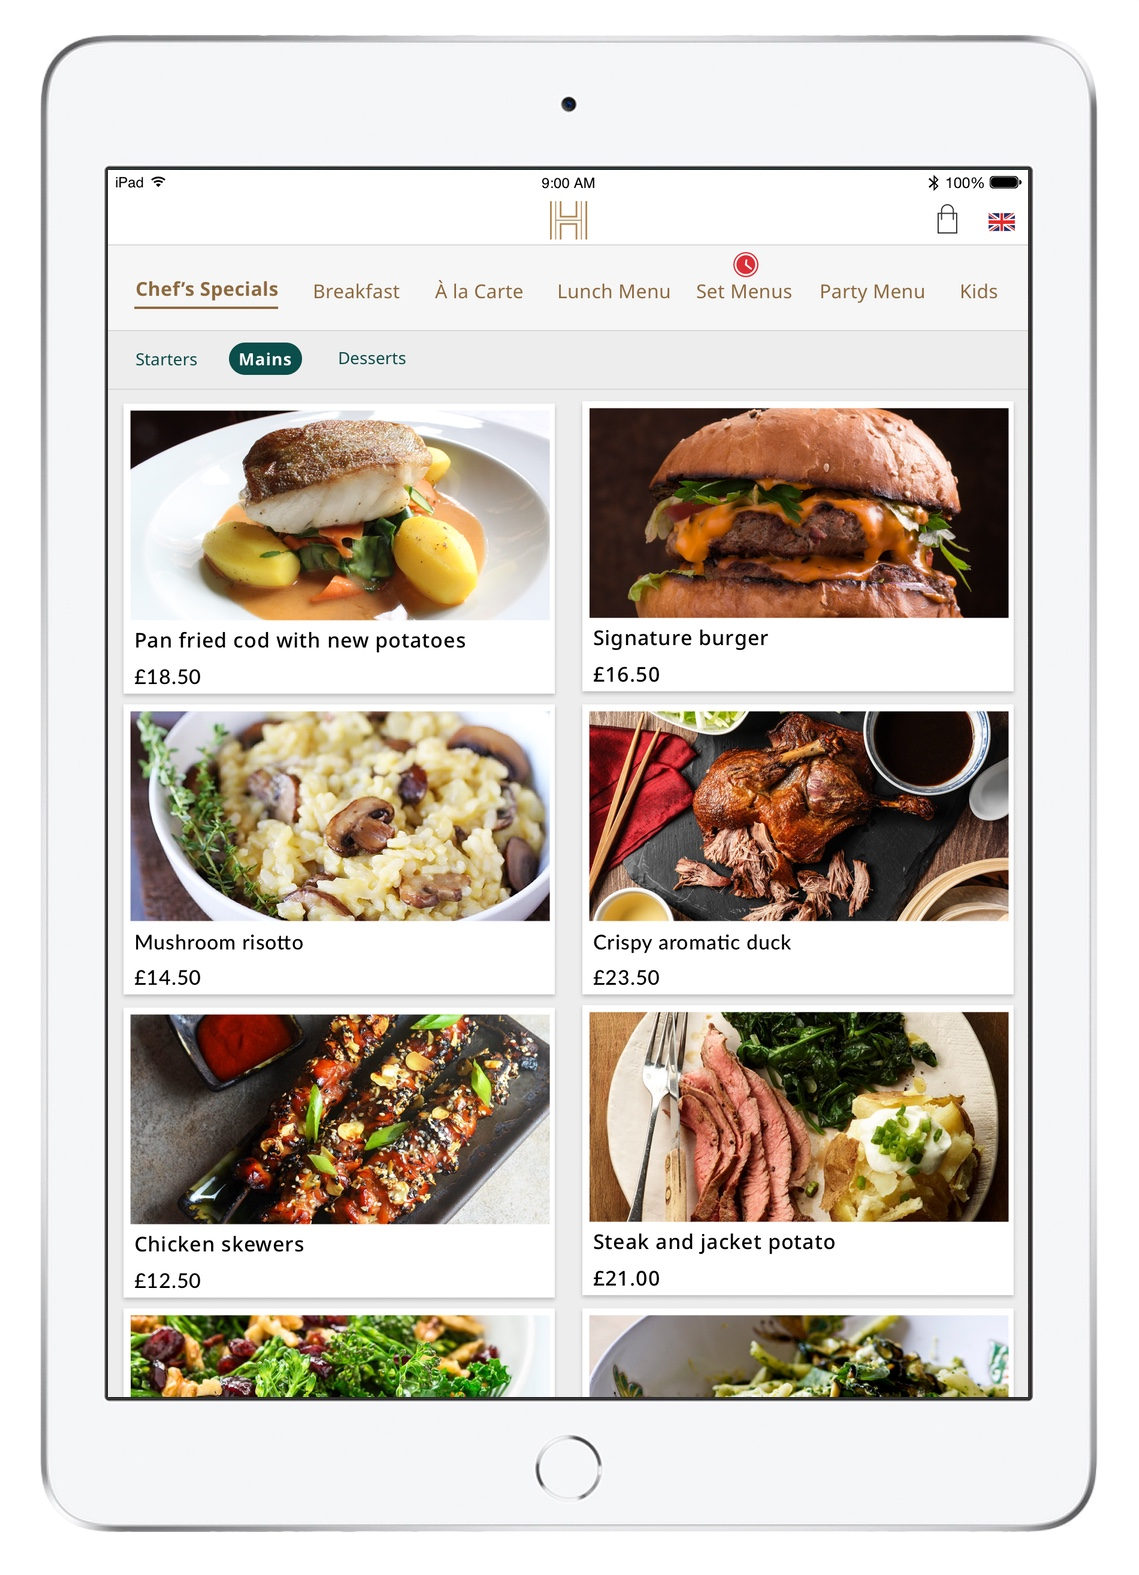 iRiS Guest Table - Now your guests can use iRiS Guest in the restaurant! The app can be setup to be a simple digital menu for your guests to browse or add wanted Items to a Shortlist, or you can allow your guests to send the orders straight to your POS system. We connect to some of the most popular POS systems in the world, and can synchronise your menu into our platform. You just need to add your images to bring the menu to life, and publish. Soon we're going to be adding Combo Meals, Set Menu, Append to Cheque, and Payment. Your guests are going to love it.